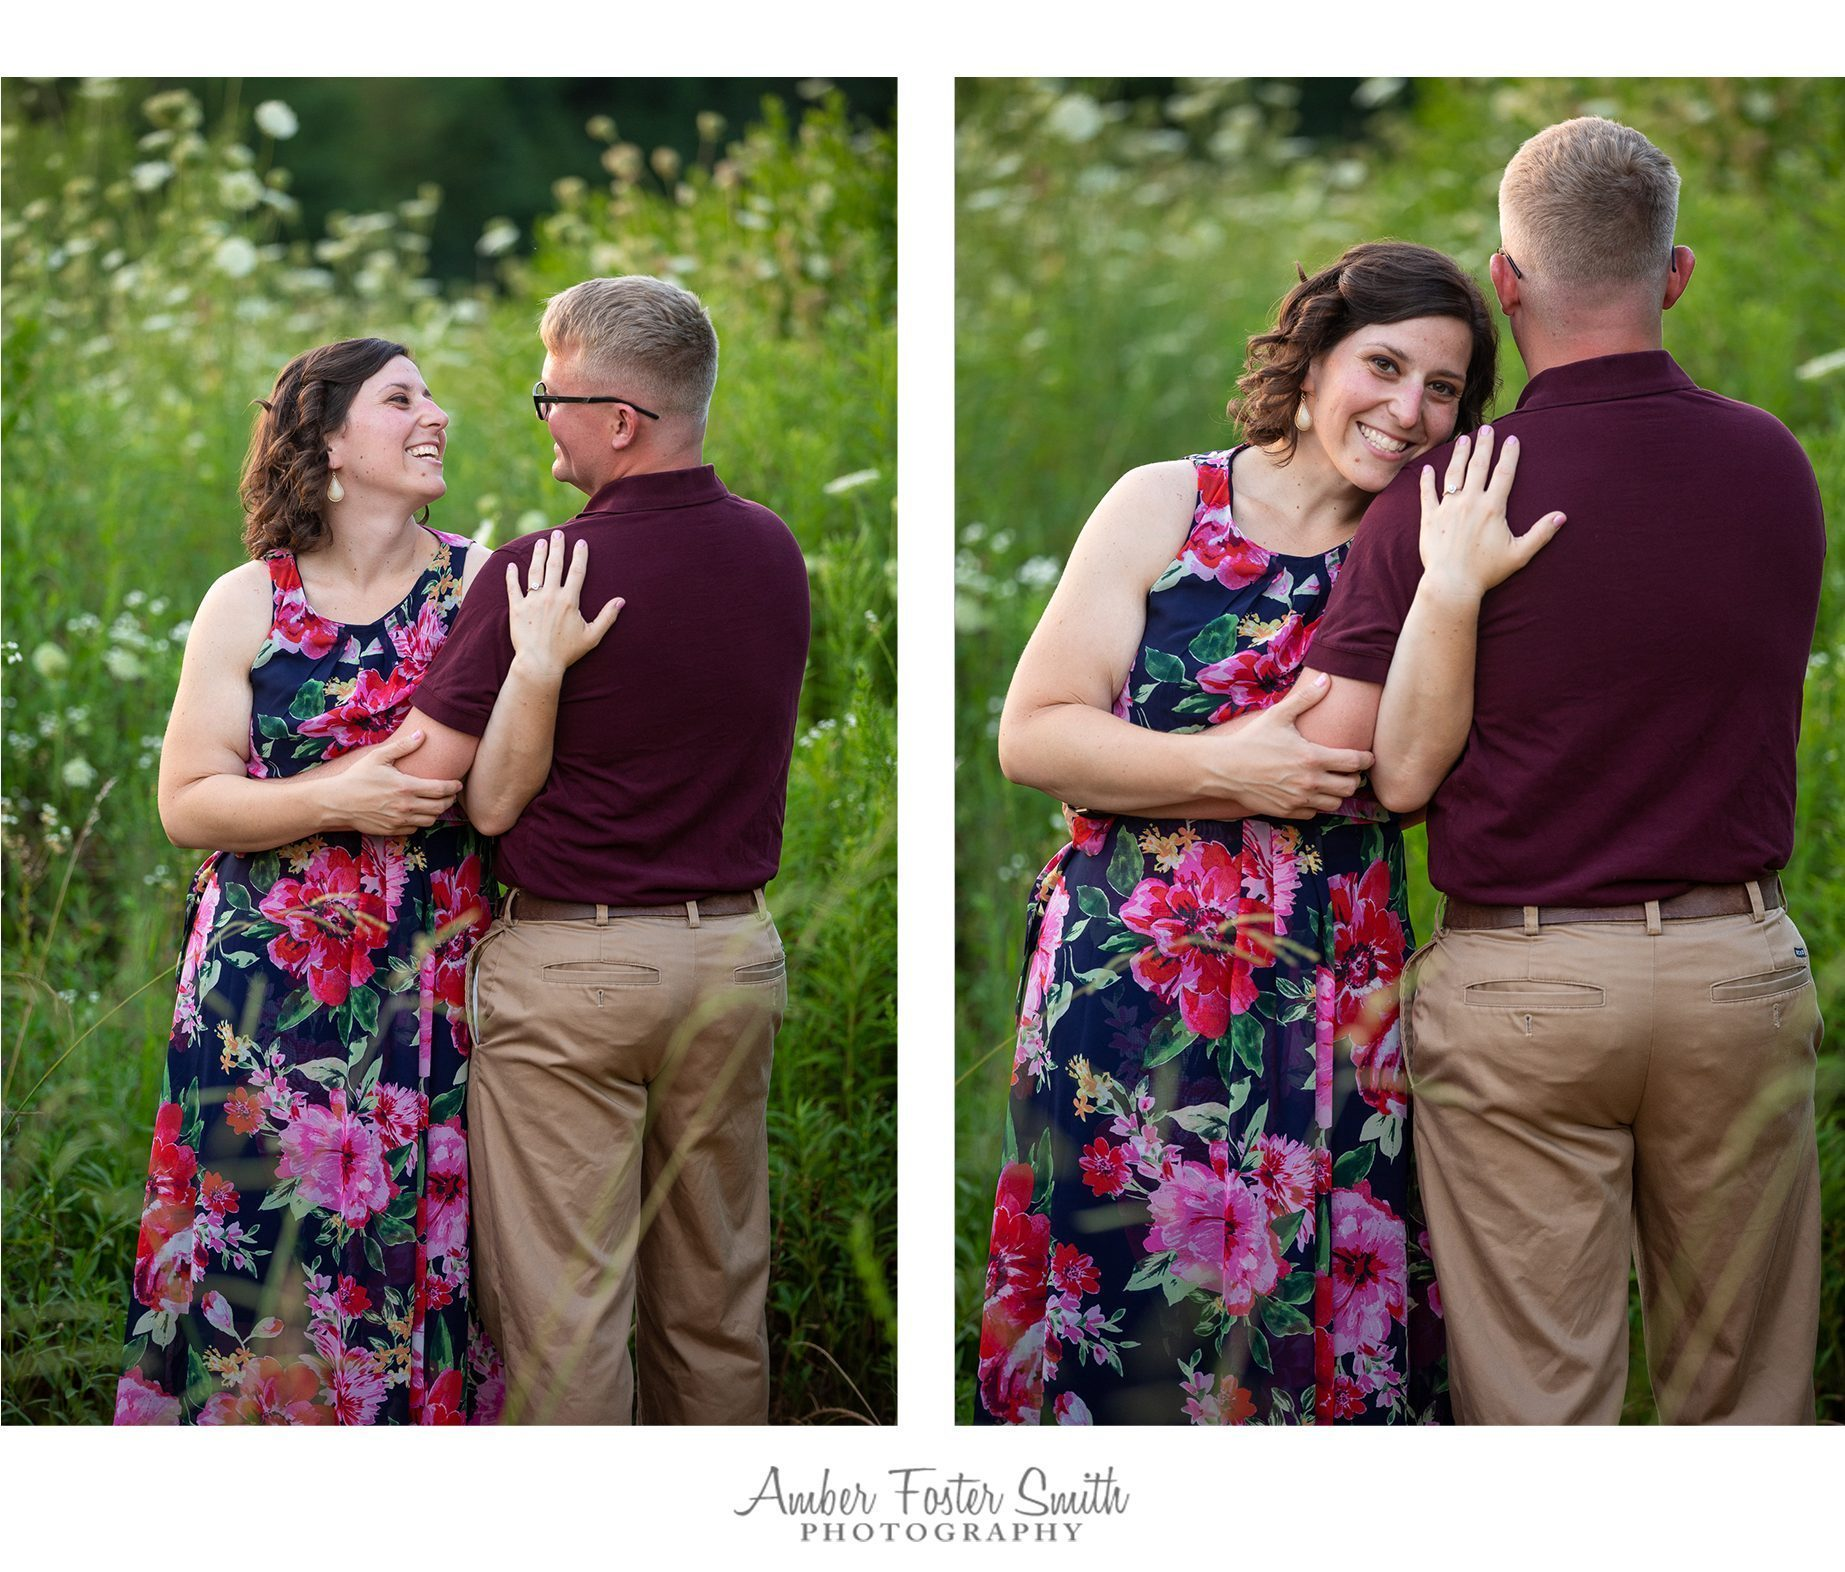 Amber Foster Smith Photography - Engagement Photographer in Holly Springs